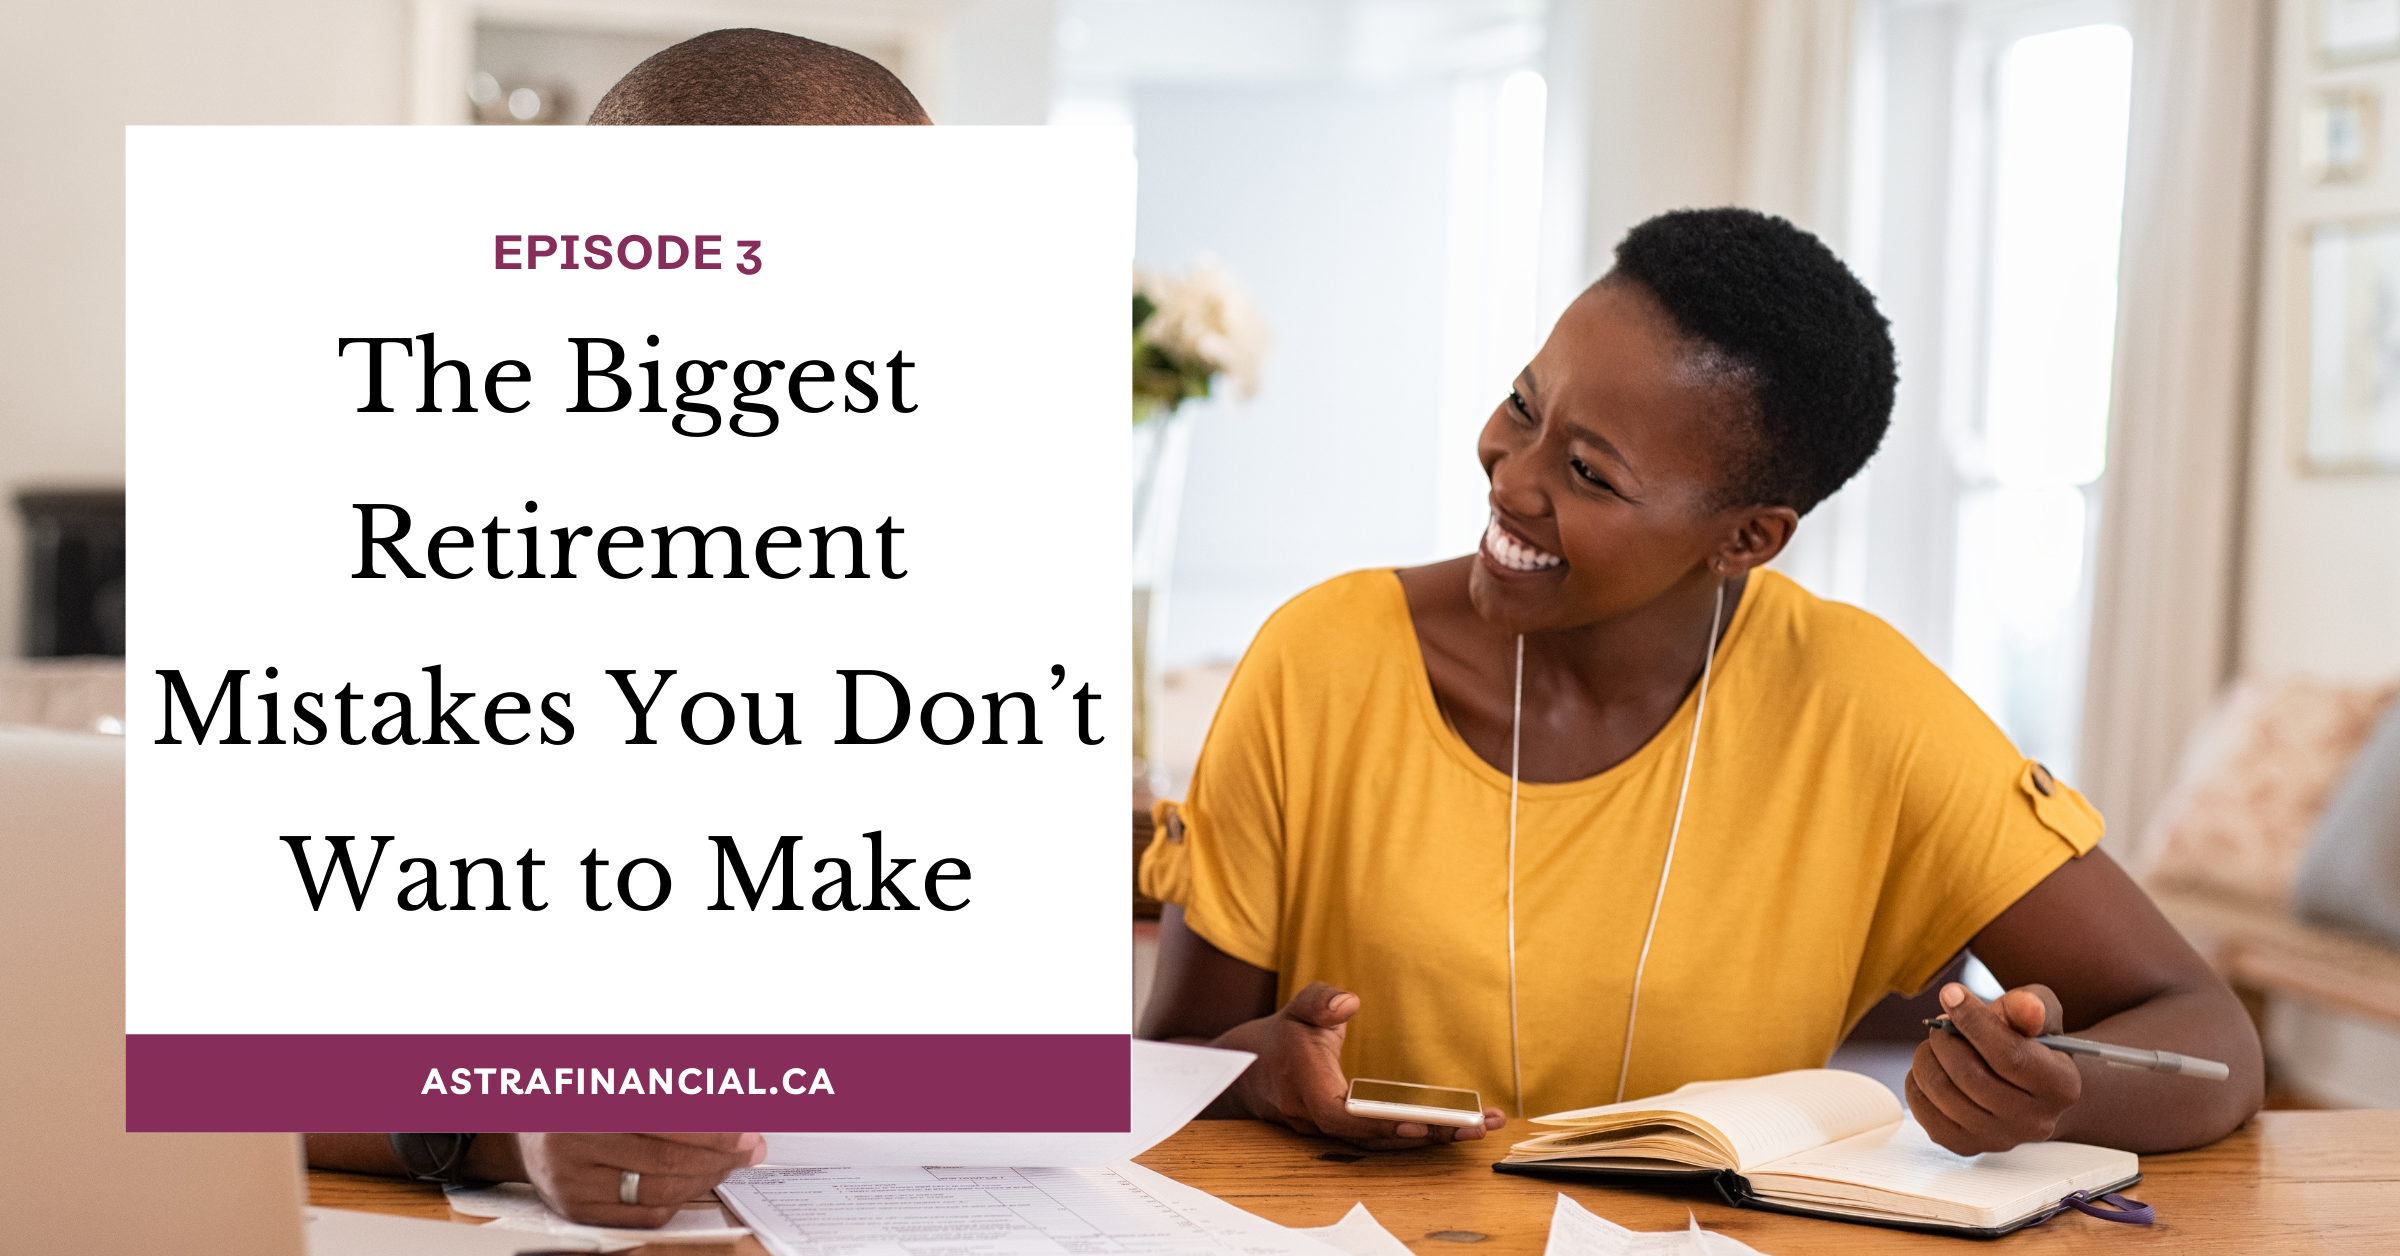 Episode 3: The Biggest Retirement Mistakes You Dont Want to Make